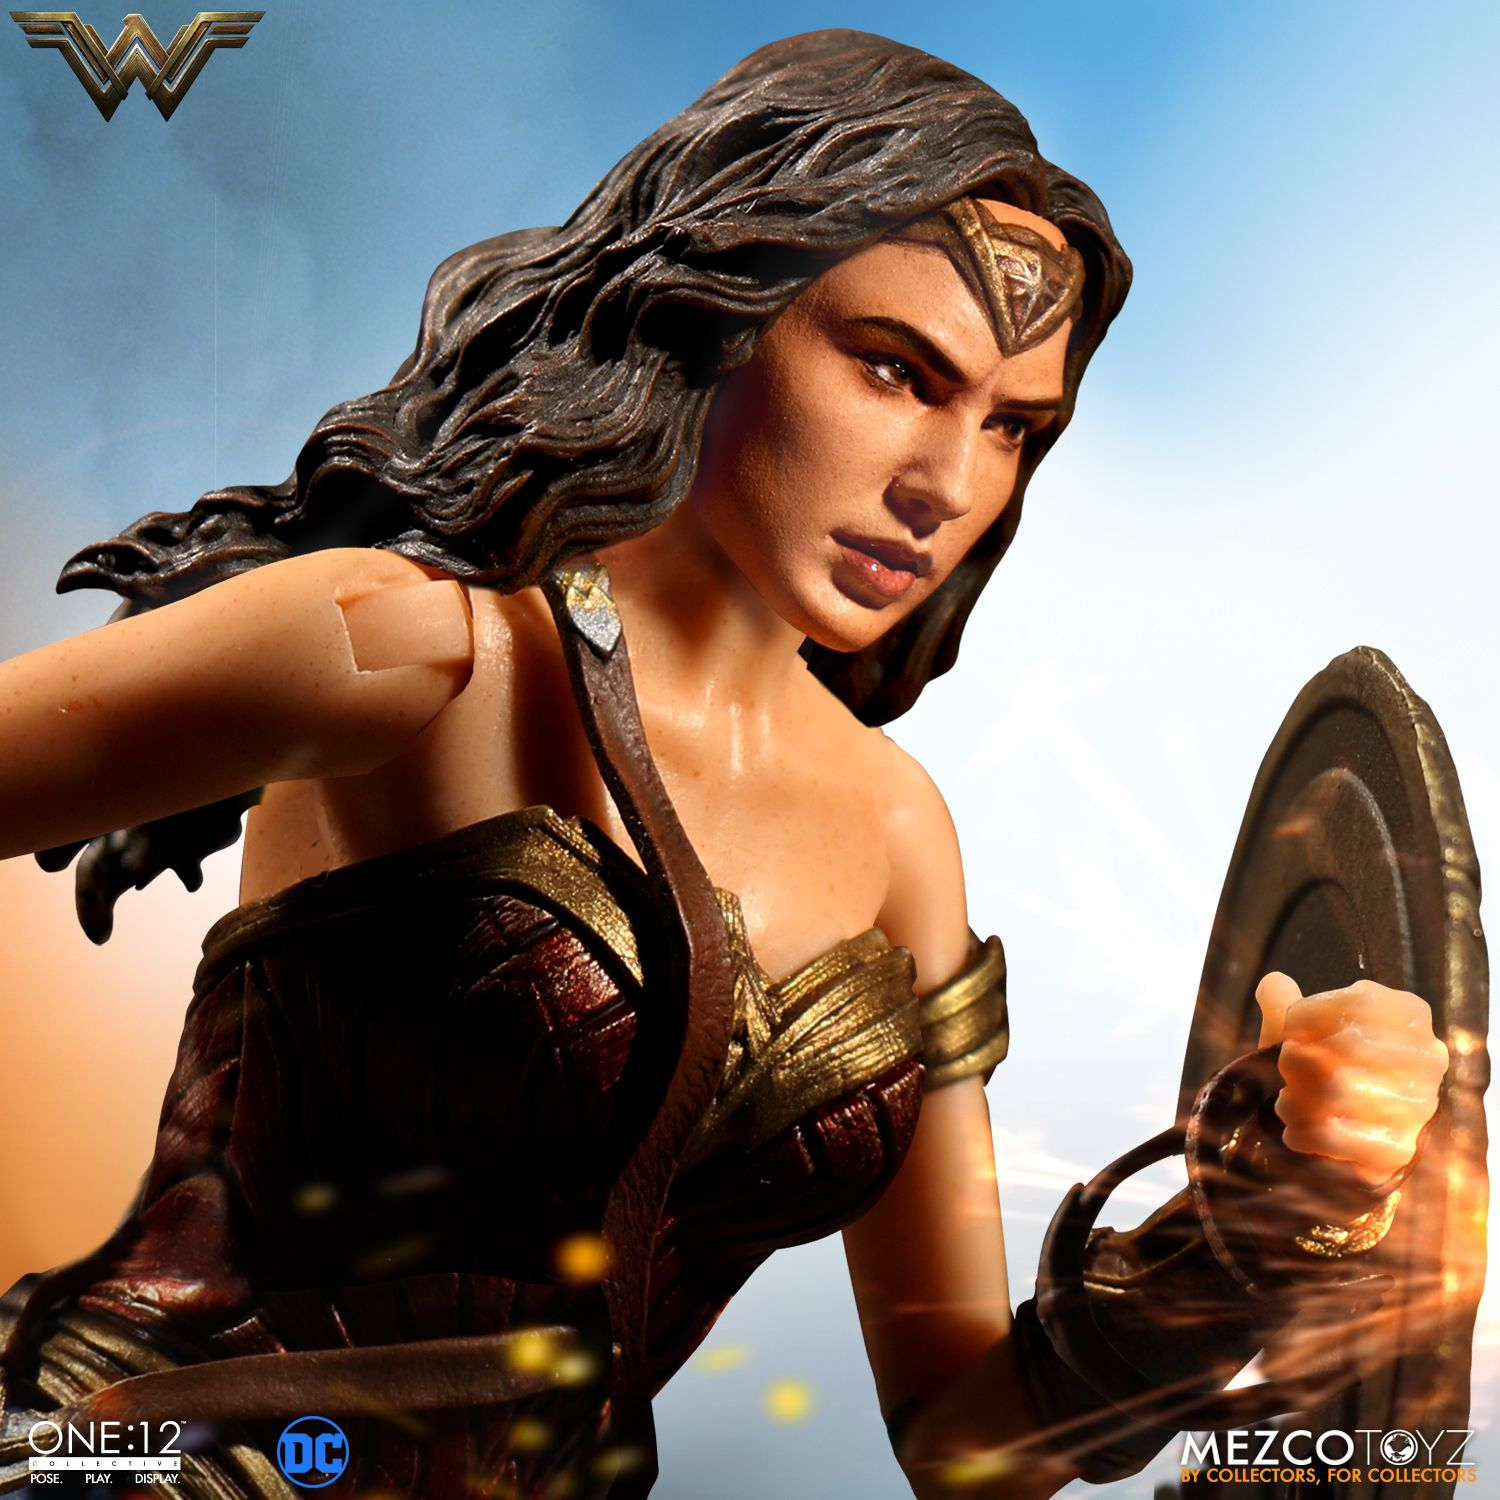 Wonder-Woman-One12-Mezco-005